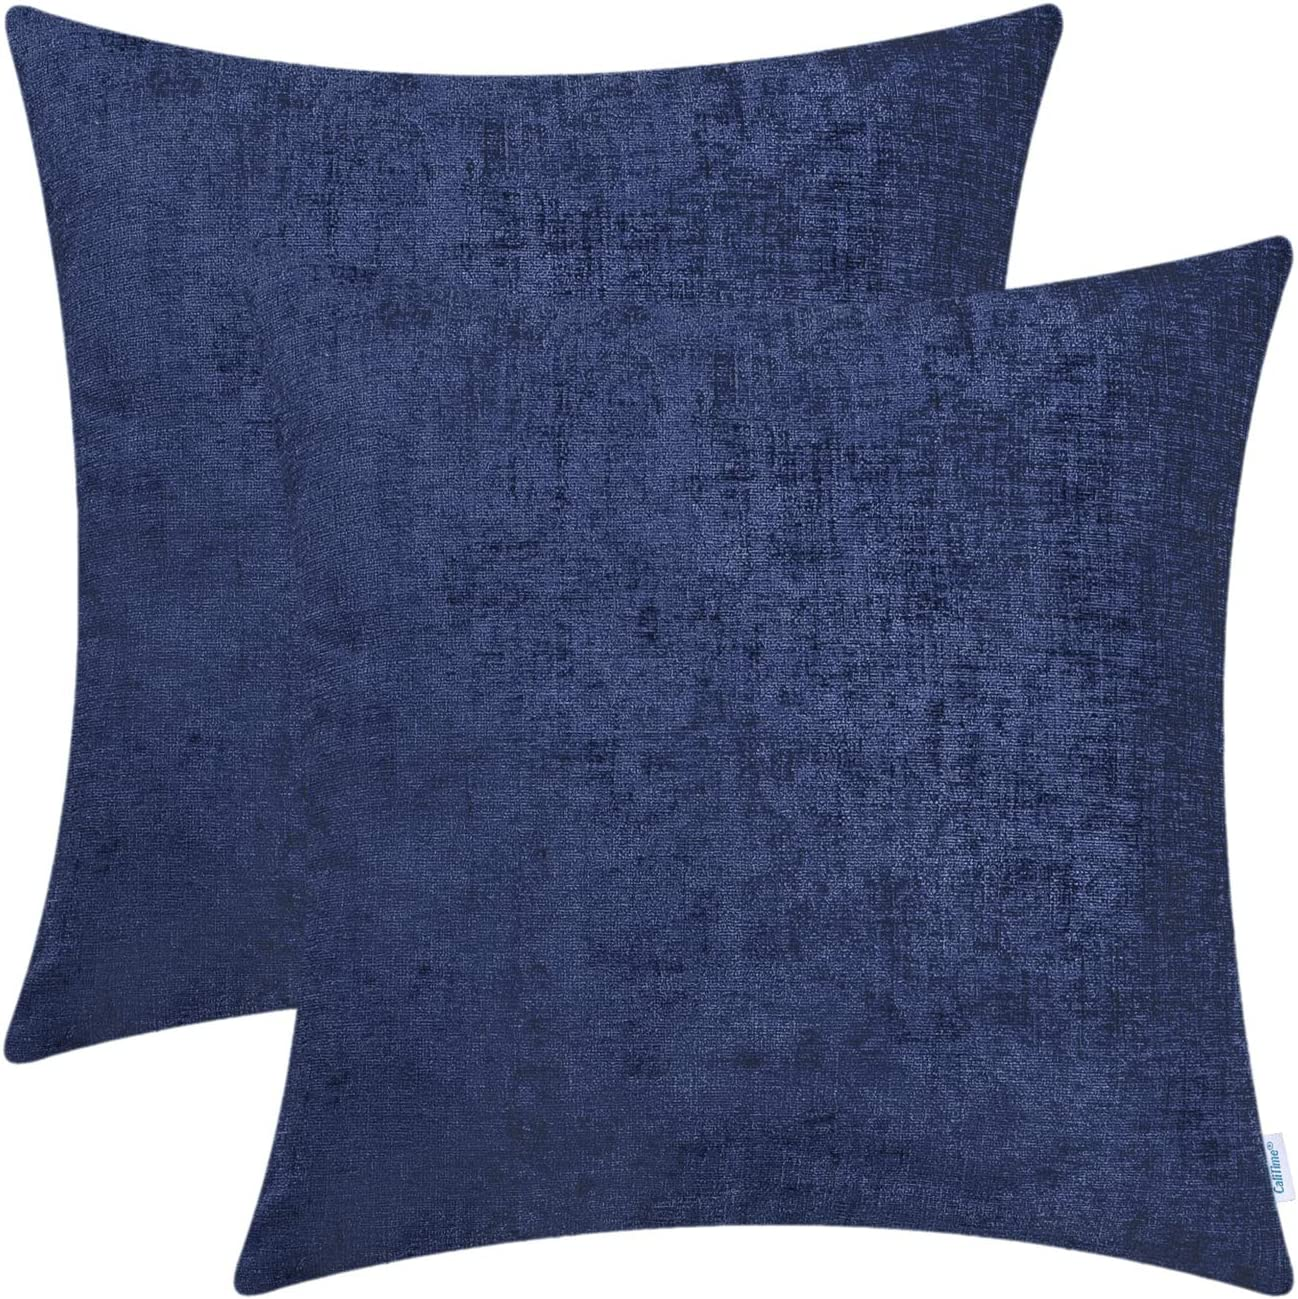 CaliTime Pack of 2 Cozy Throw Pillow Covers Cases for Couch Sofa Home Decoration Solid Dyed Soft Chenille 20 X 20 Inches Navy Blue